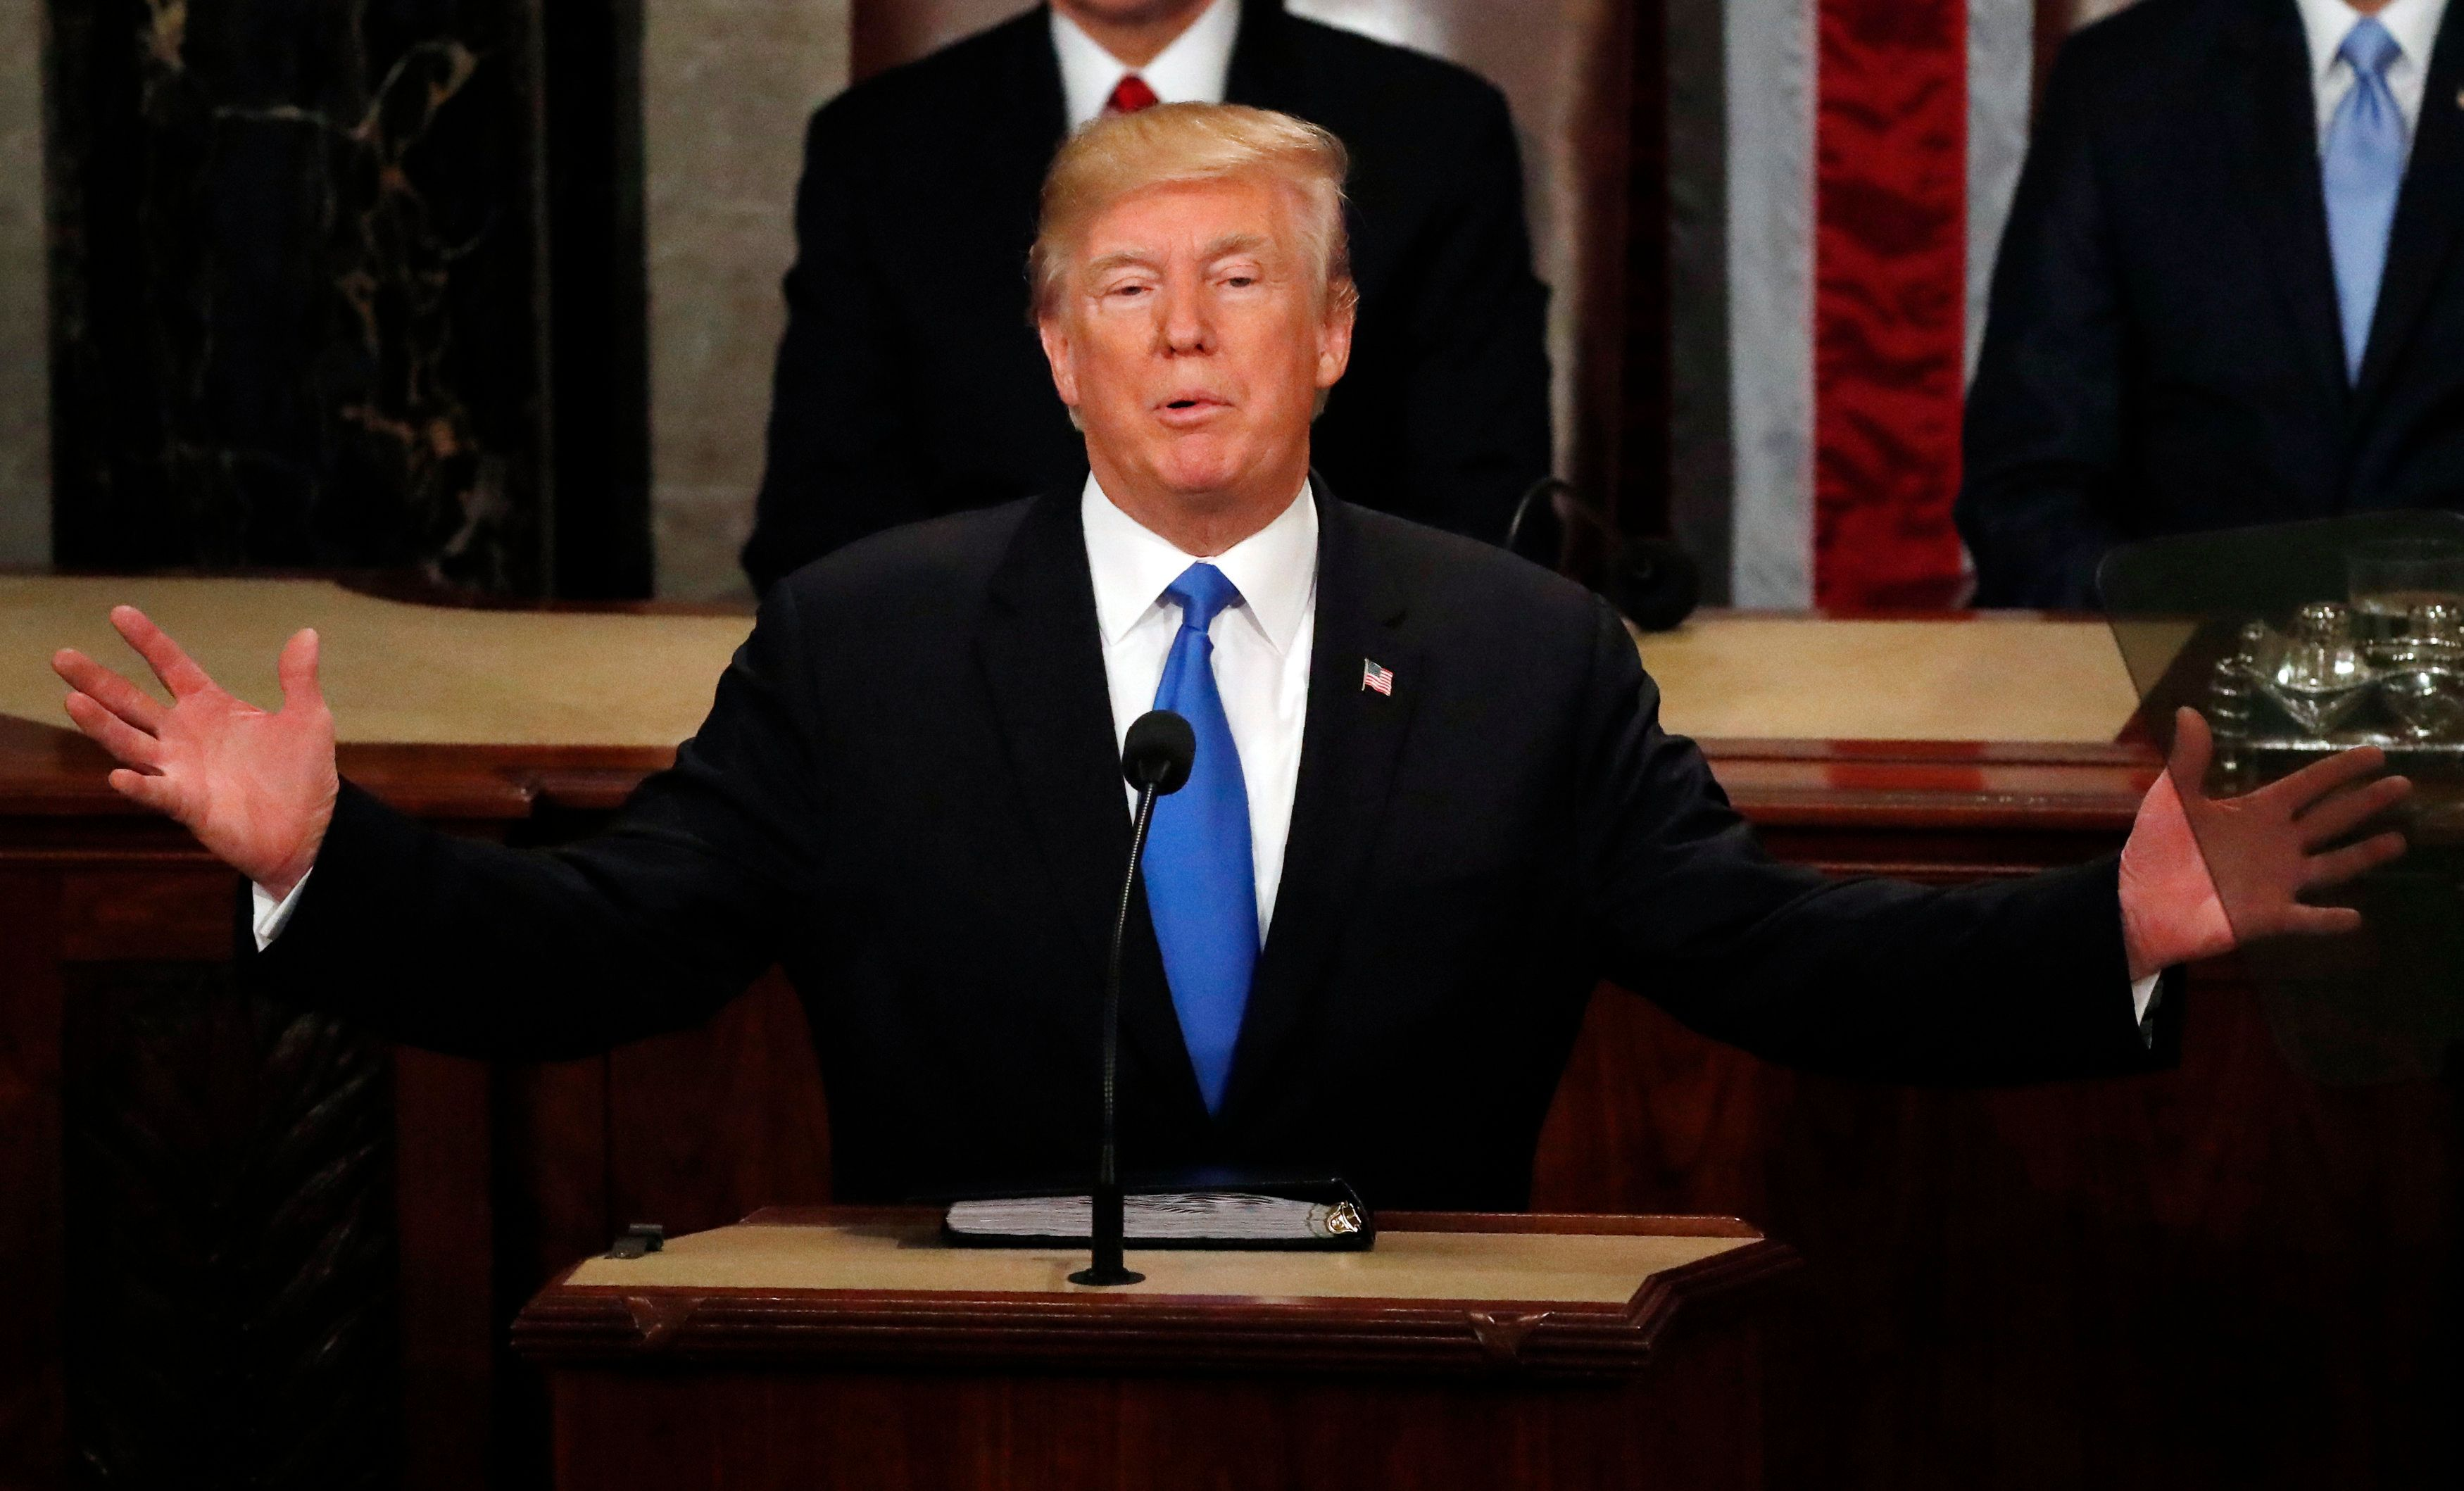 40 million people watched Trump's State of the Union address on TV